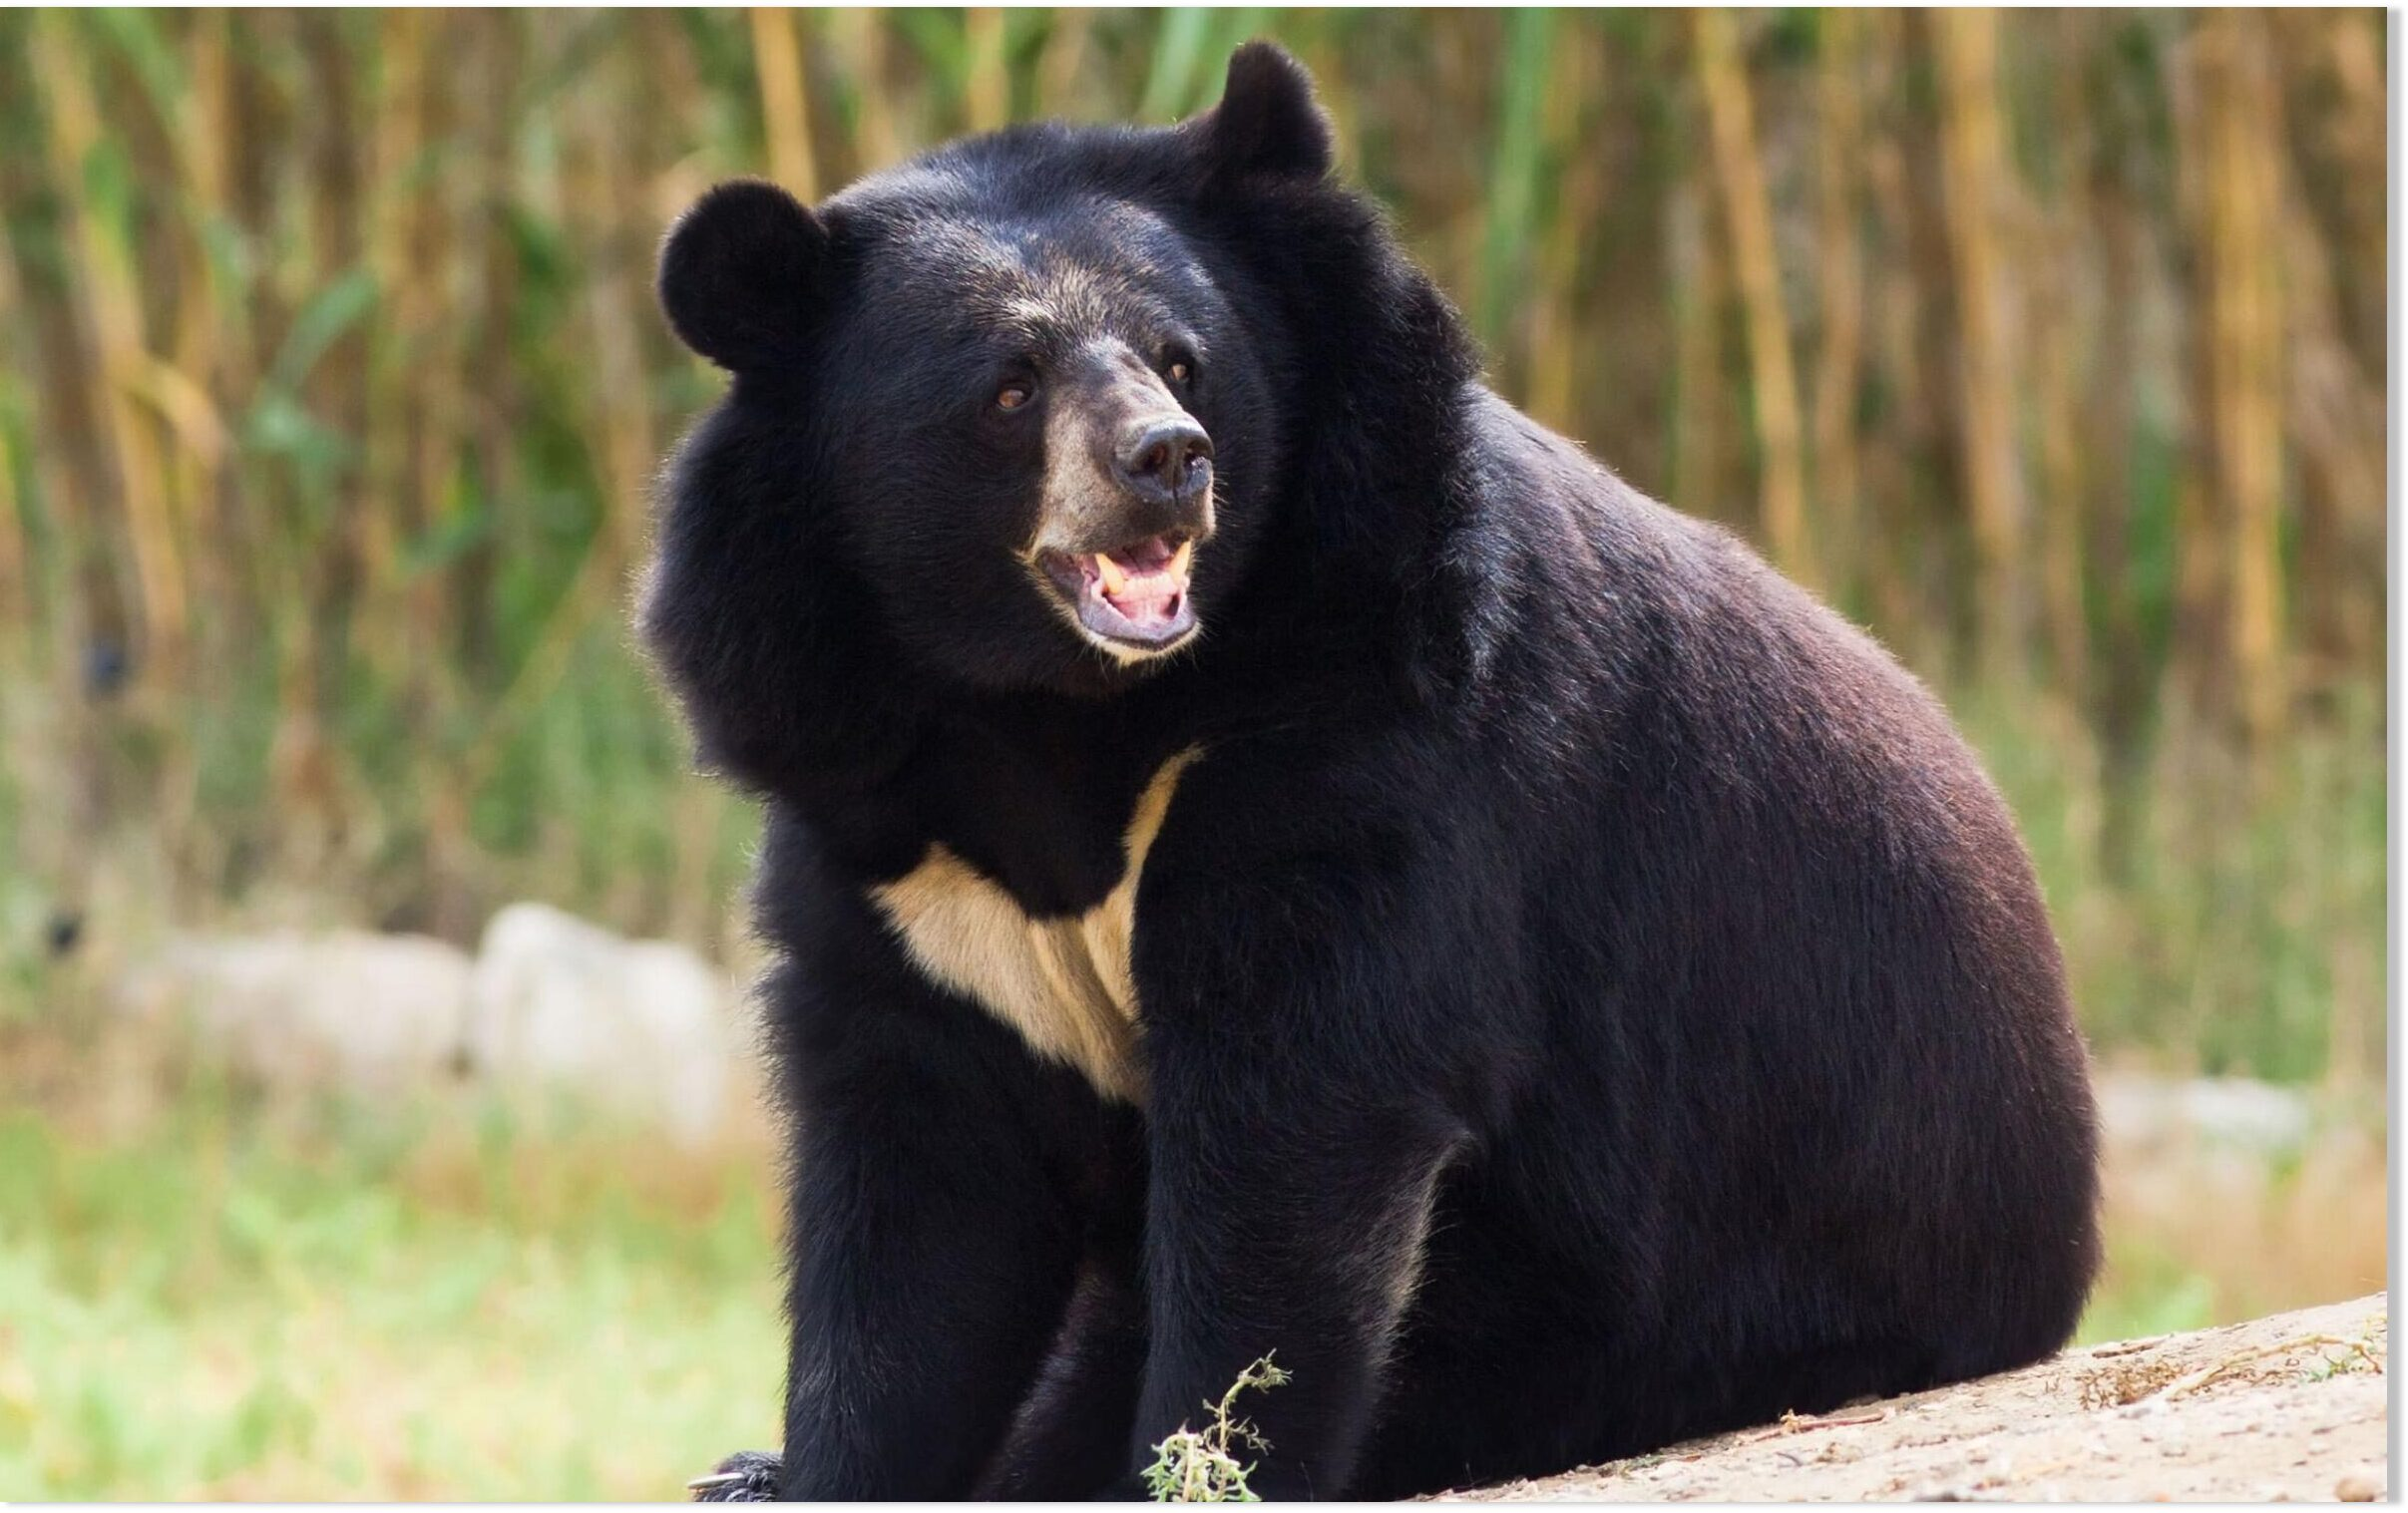 Black bear attacks and injures 4 people in central Japan city